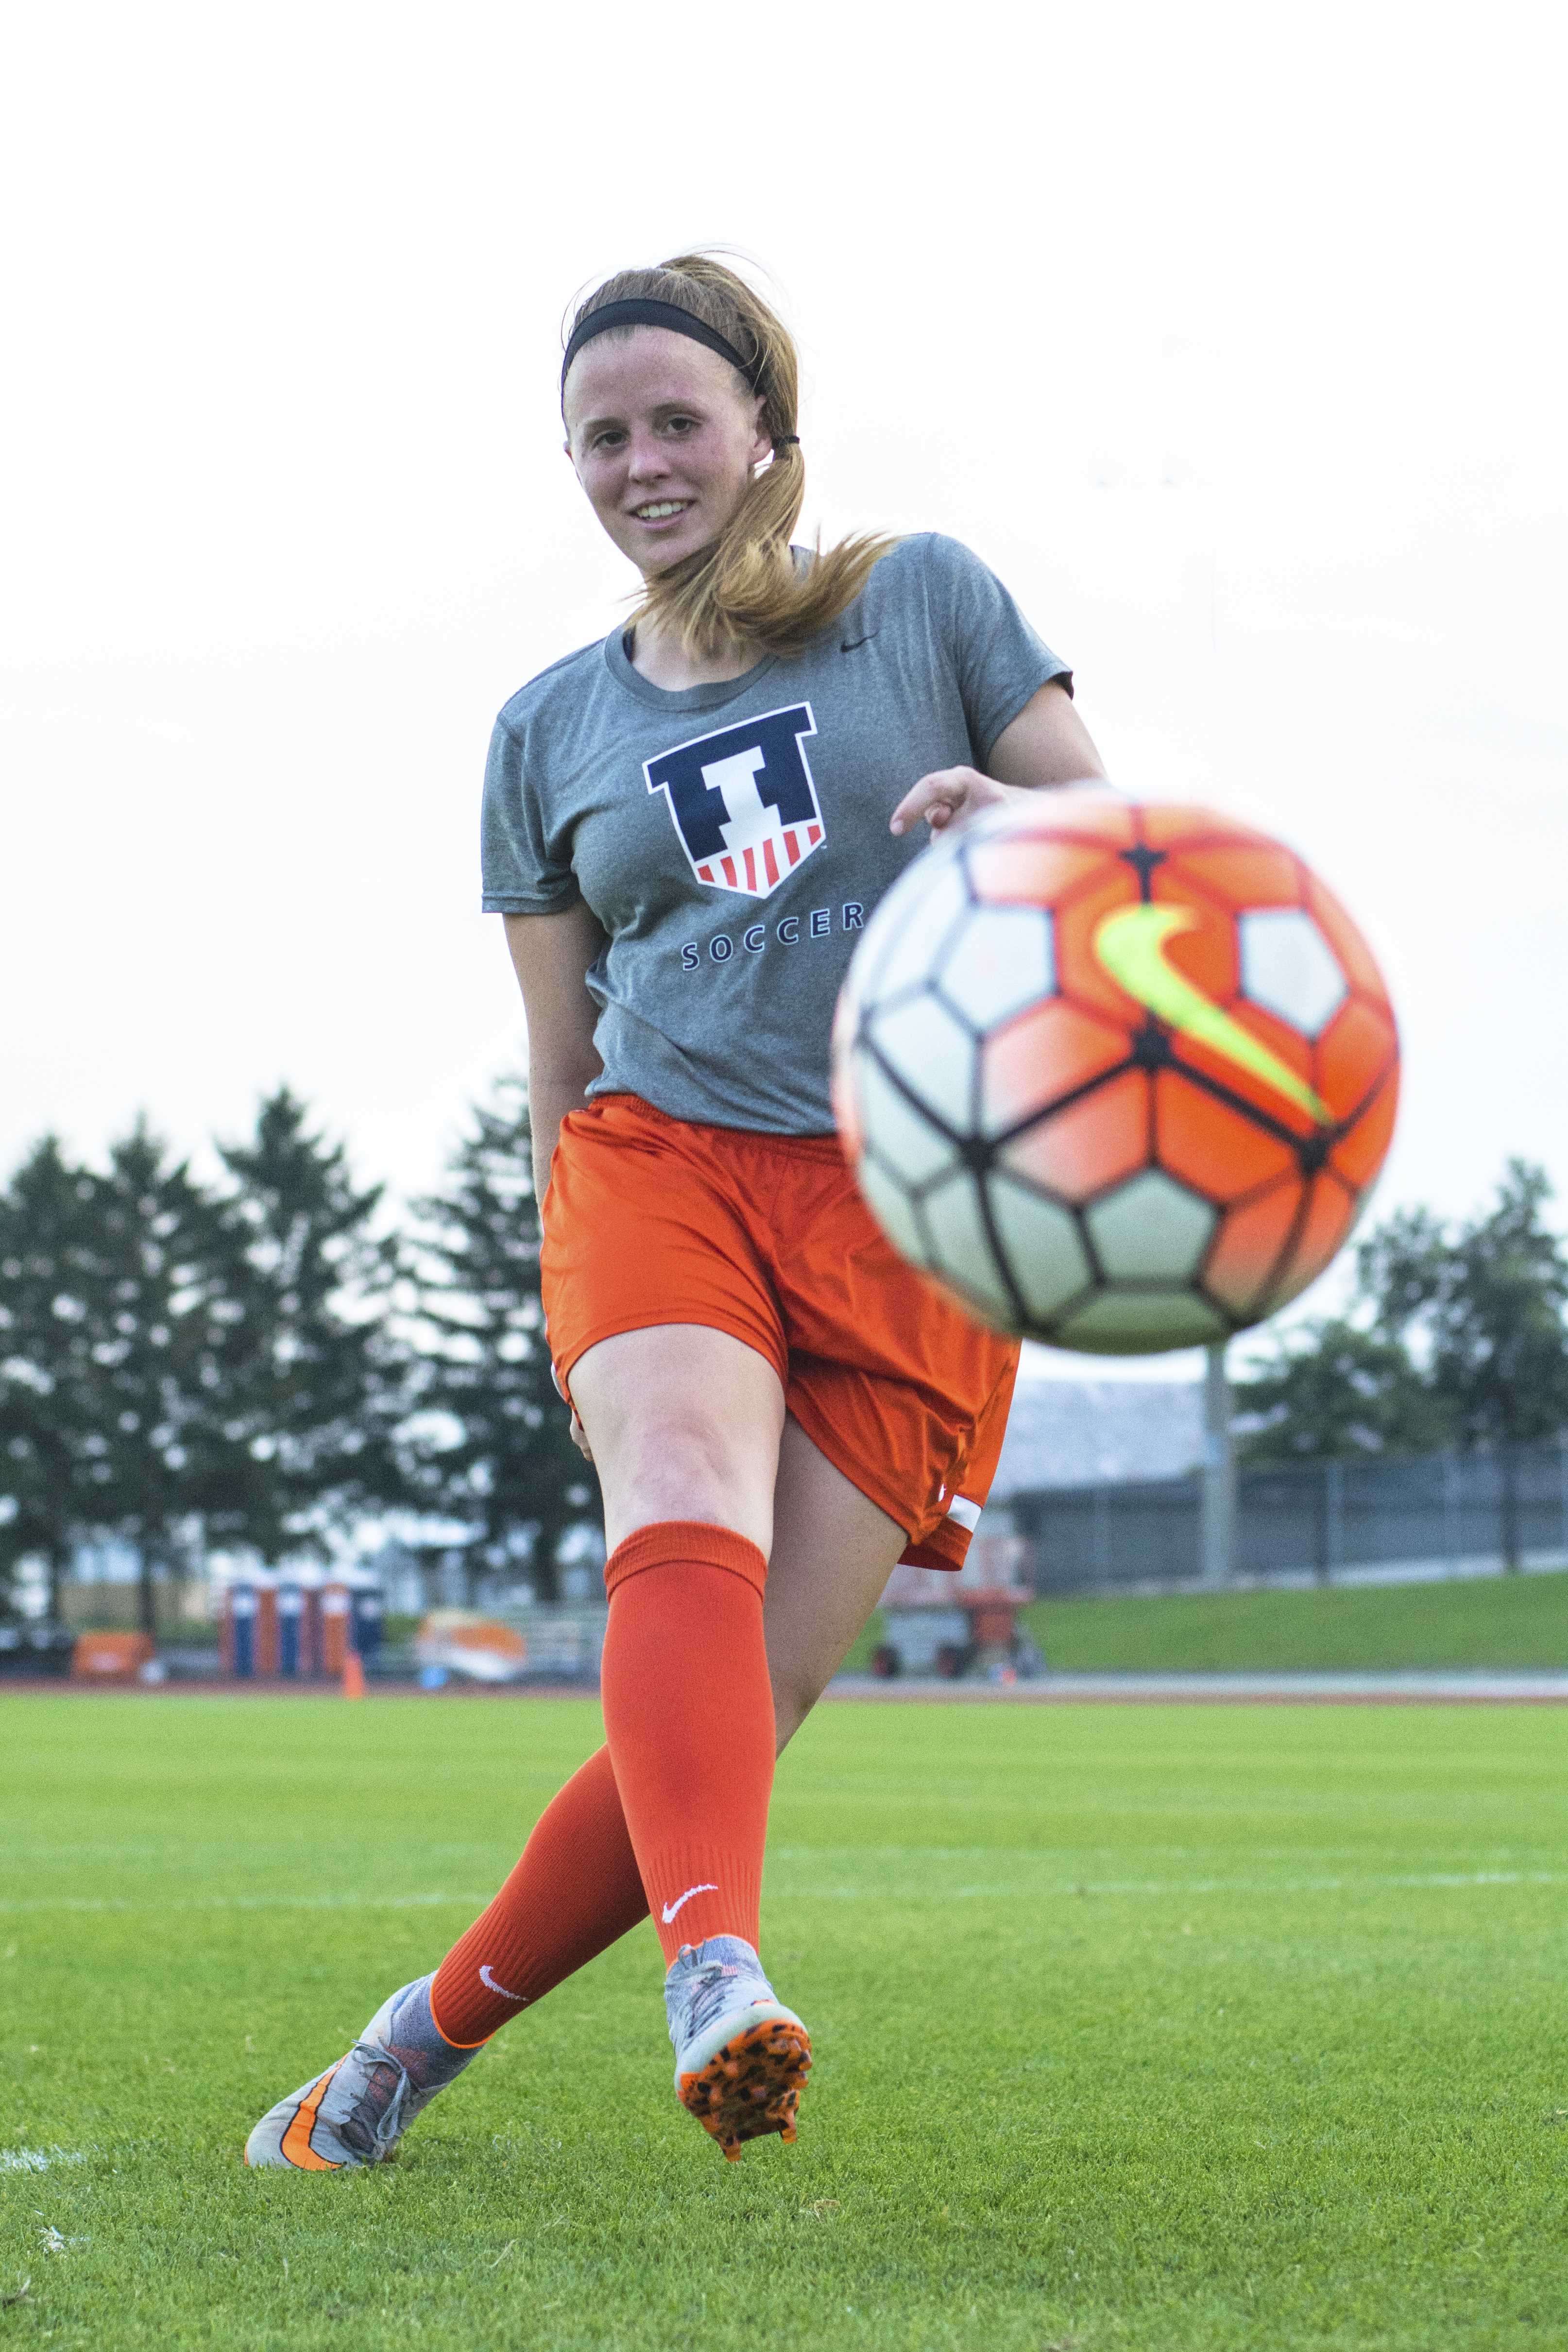 Overcoming+injuries+and+setbacks%2C+Jannelle+Flaws+has+come+a+long+way+to+be+Illinois+soccer%27s+all-time+leading+scorer.+